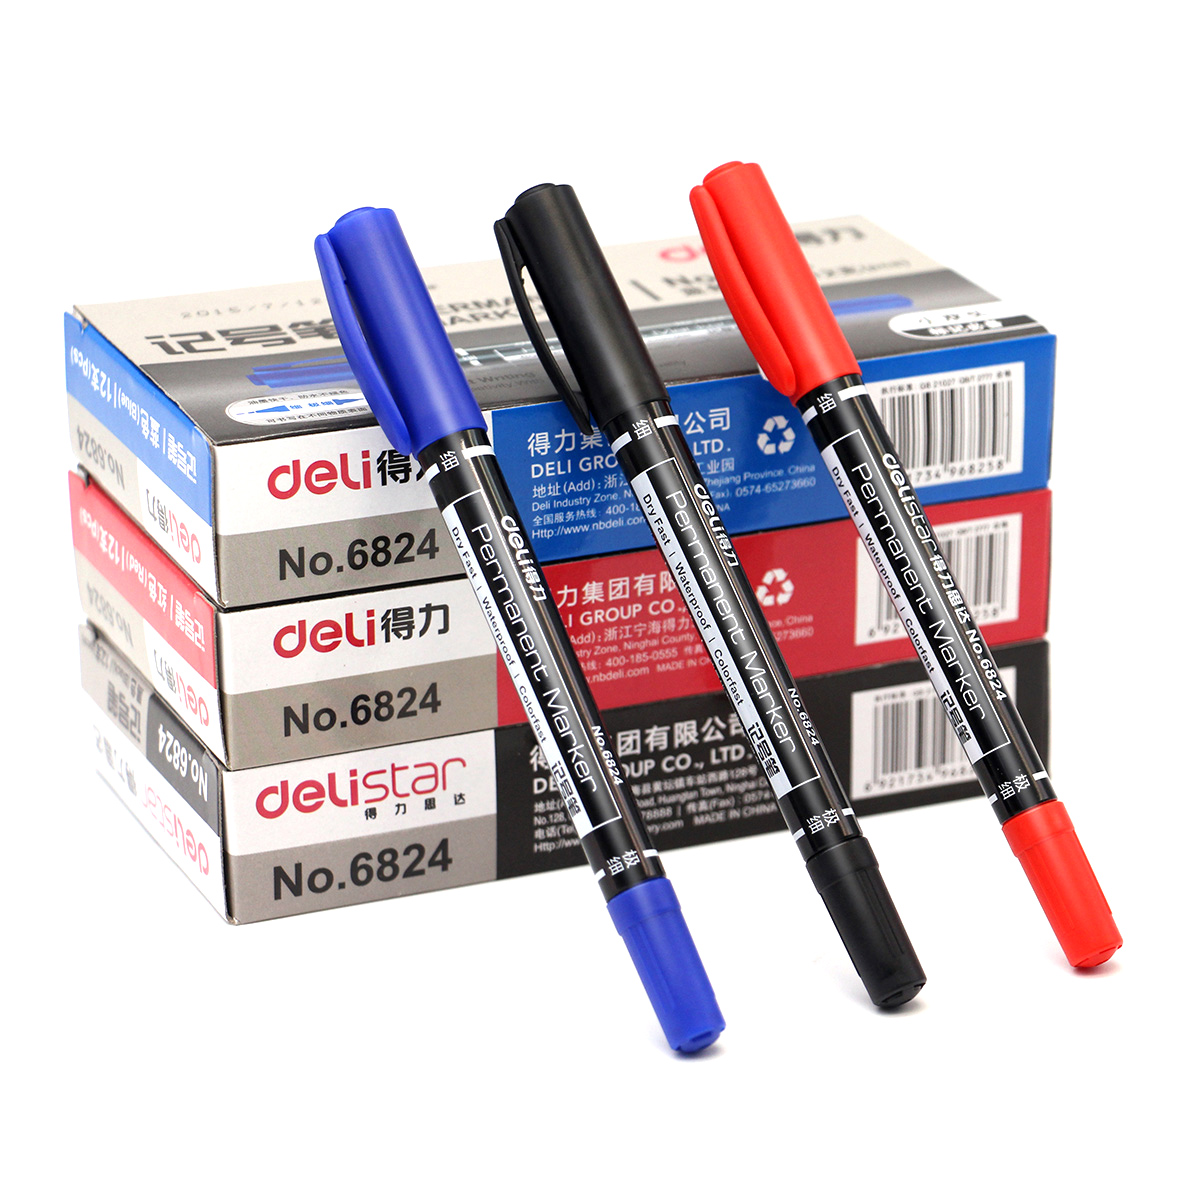 12 Pieces/set Twin Tip Permanent Marker Fine/Medium Point 0.5mm-1mm Pen Marker Black Blue Red Ink Waterproof Oil-Ink Marker Pen12 Pieces/set Twin Tip Permanent Marker Fine/Medium Point 0.5mm-1mm Pen Marker Black Blue Red Ink Waterproof Oil-Ink Marker Pen